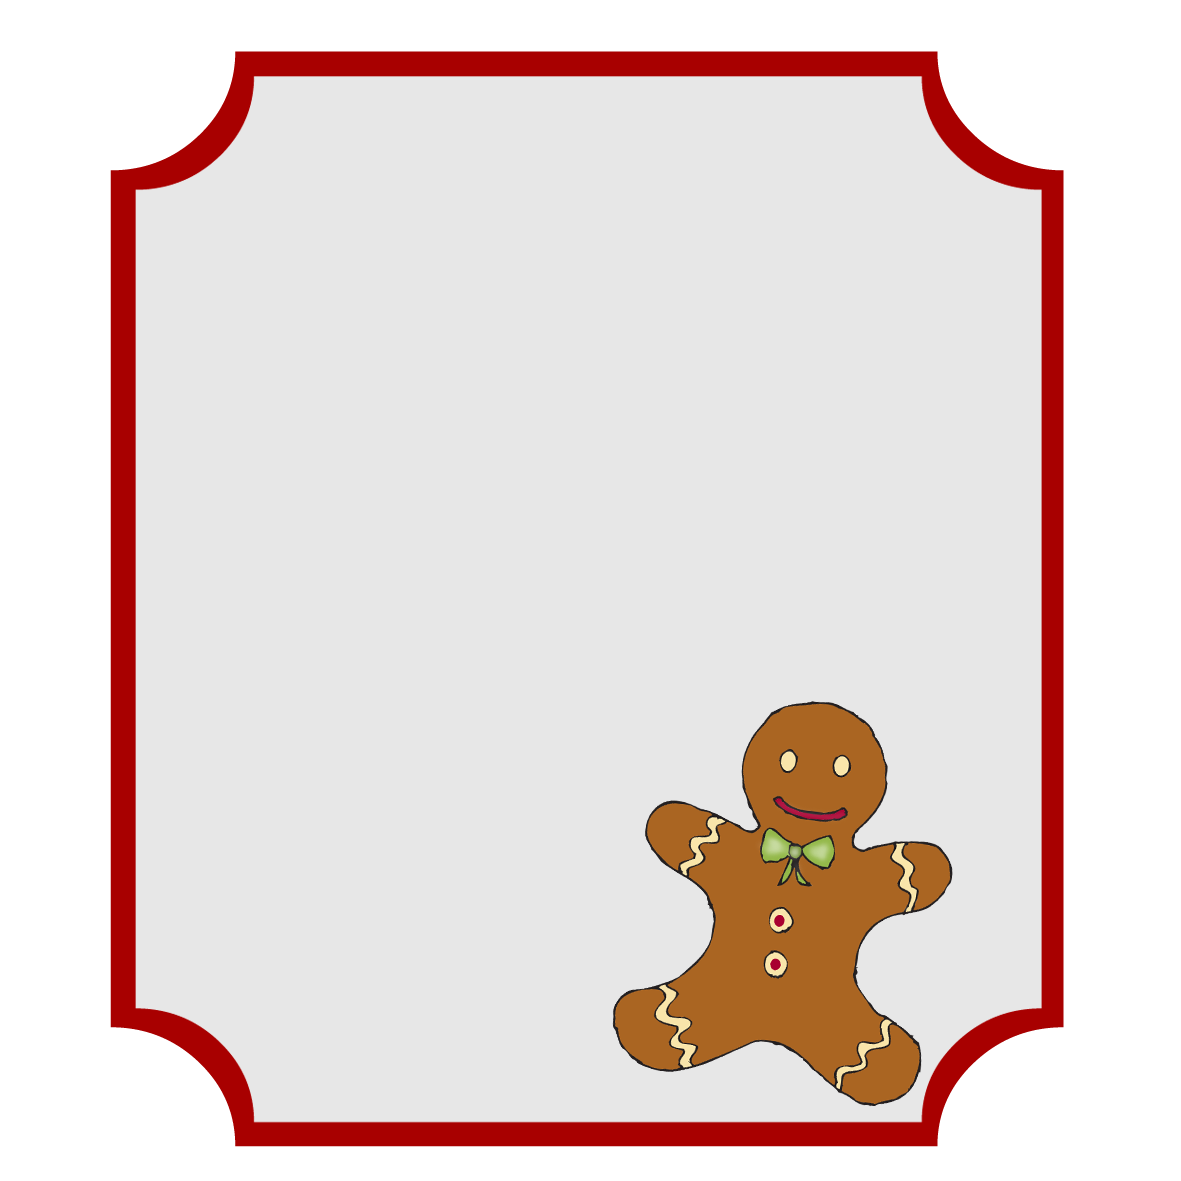 Christmas tag clipart graphic library download PeekABooPaper Digital Scrapbooking: October 2012 graphic library download